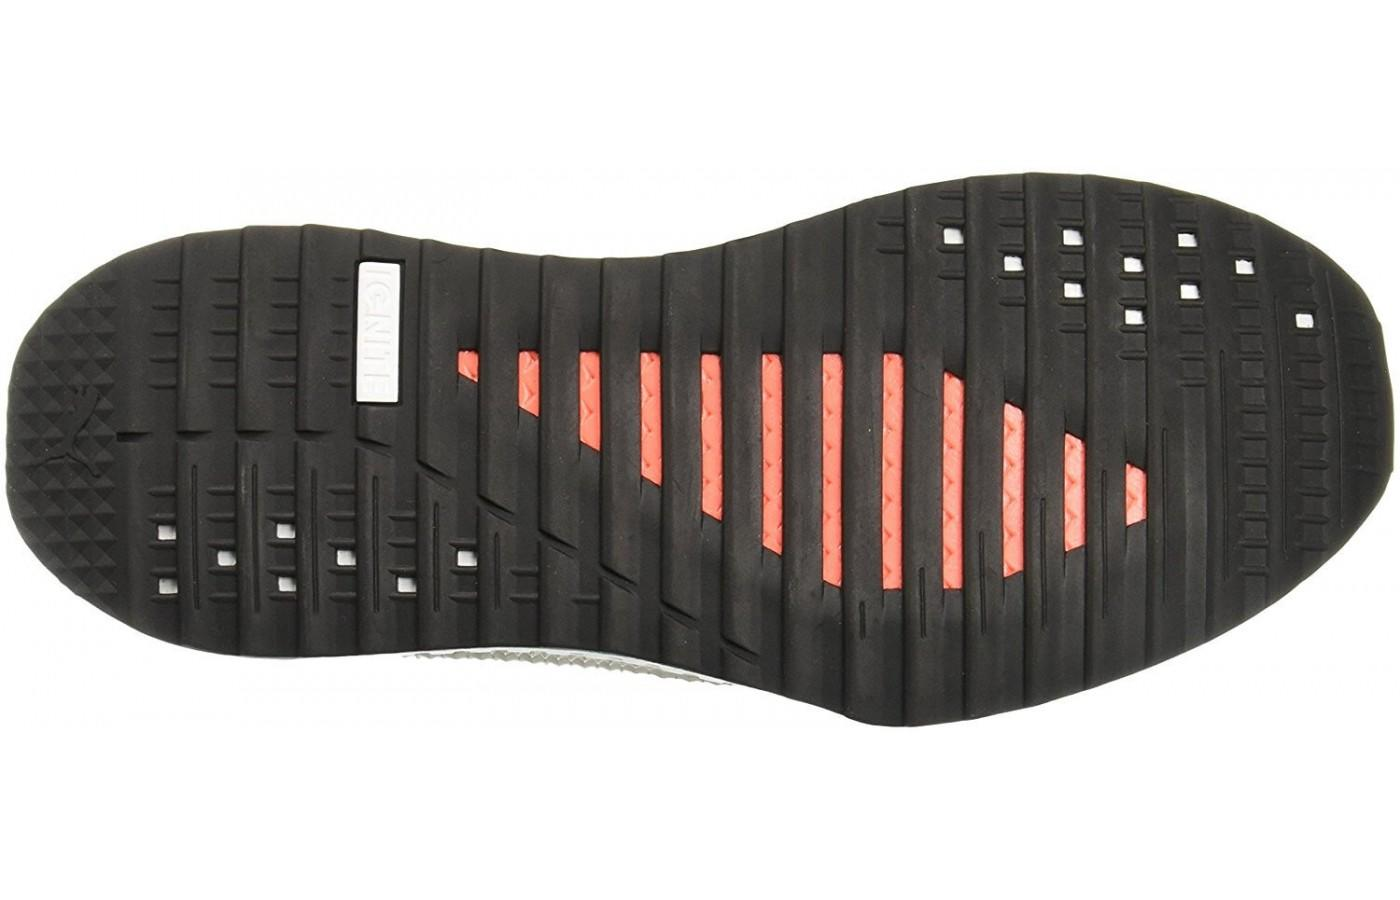 The outsole is a more traditional, protective material.